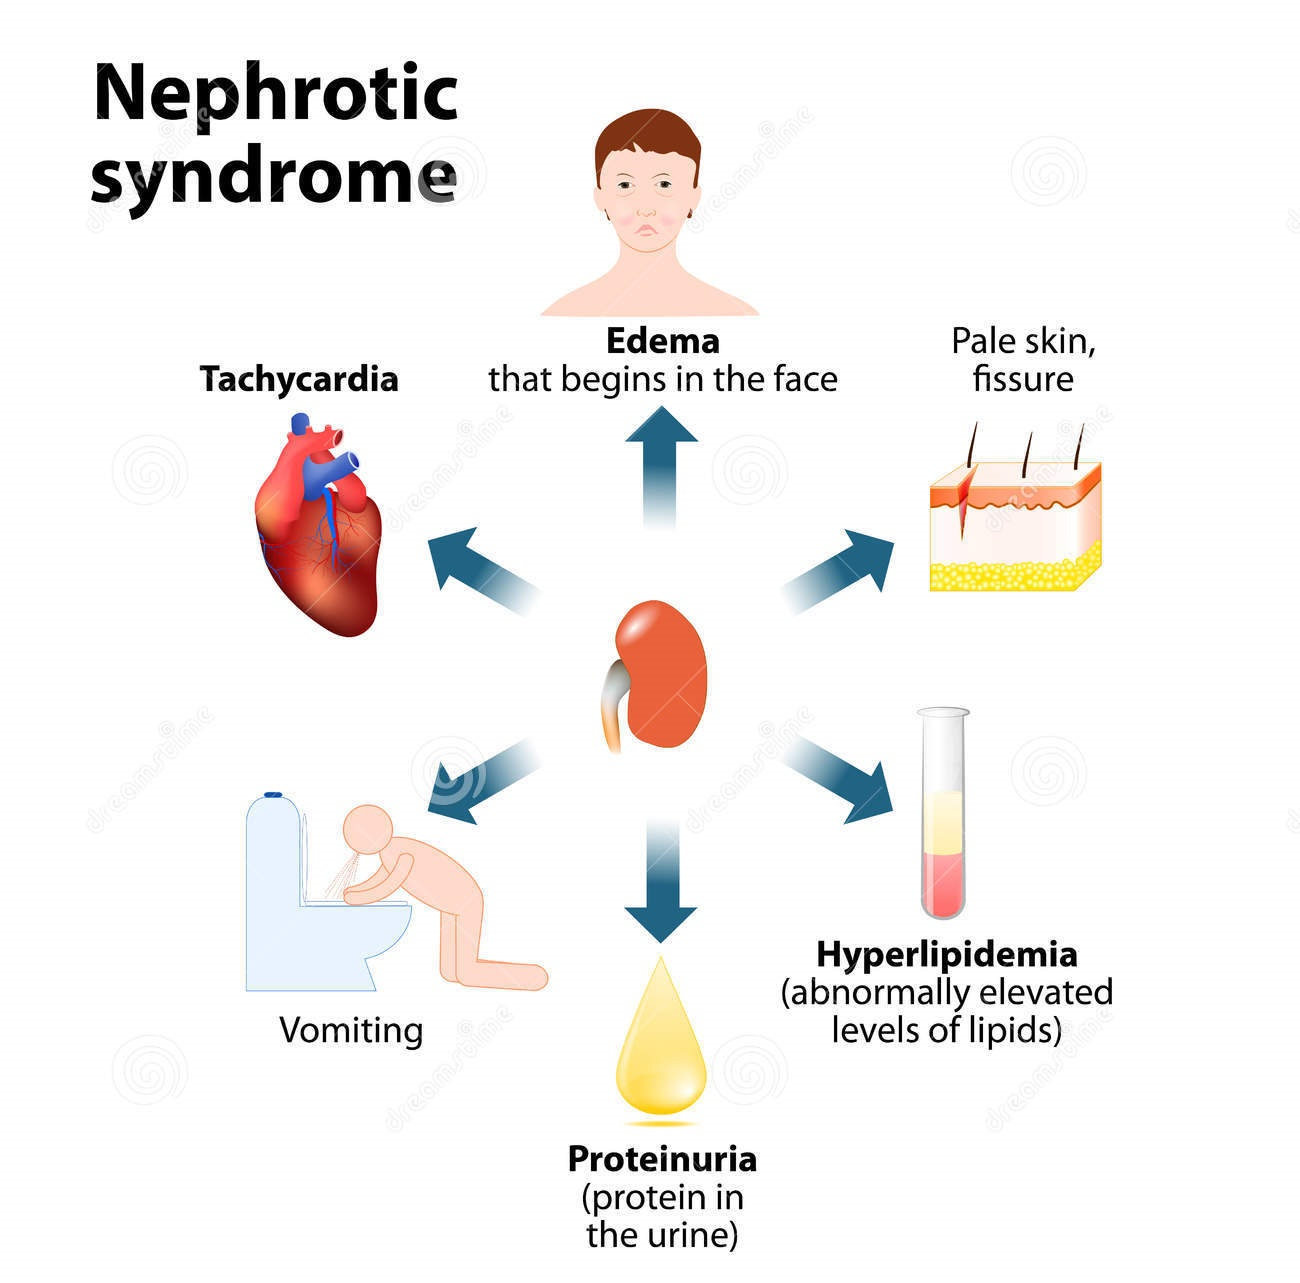 nephrotic syndrome essay Nephrotic syndrome is diagnosed through proteinuria while diabetic nephropathy is the commonest cause of nephrotic syndrome, membranous glomerulopathy (nephropathy) is the second highest cause of nephrotic syndrome.